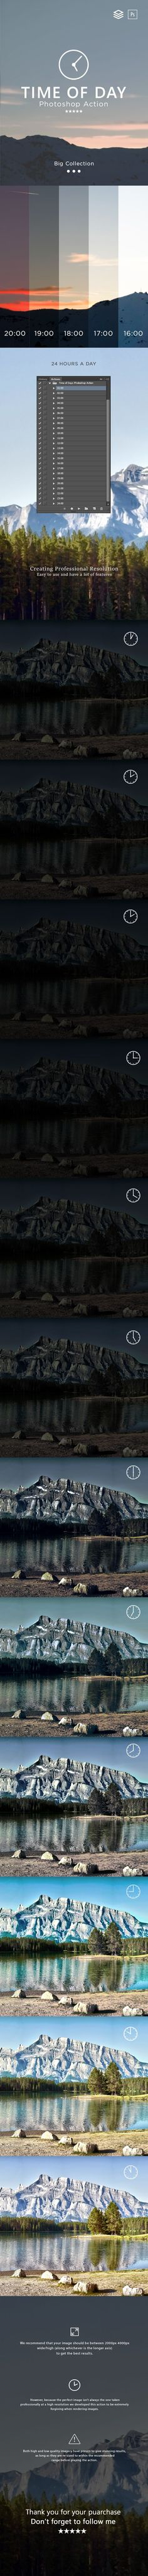 Time of Day Photoshop Action - Photo Effects Actions